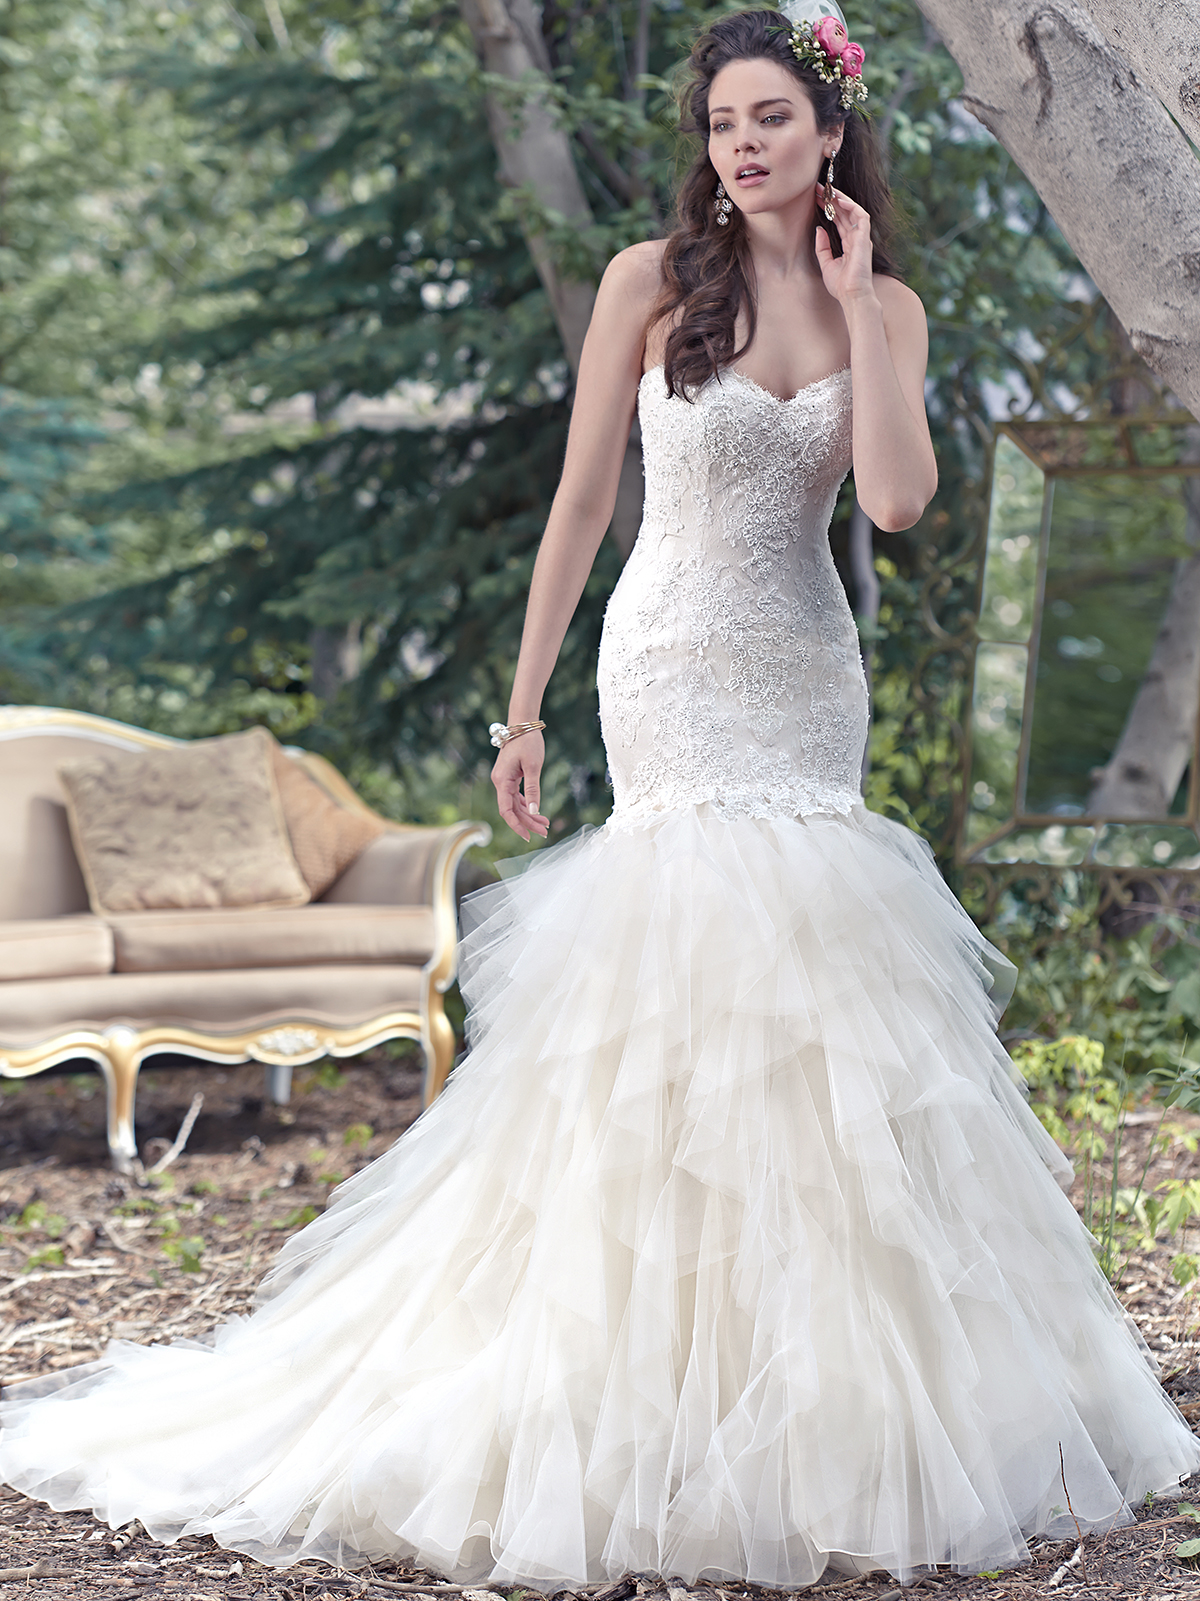 Maggie Sottero Storm Tulle Fit And Flare Bridal Dress|DimitraDesigns.com